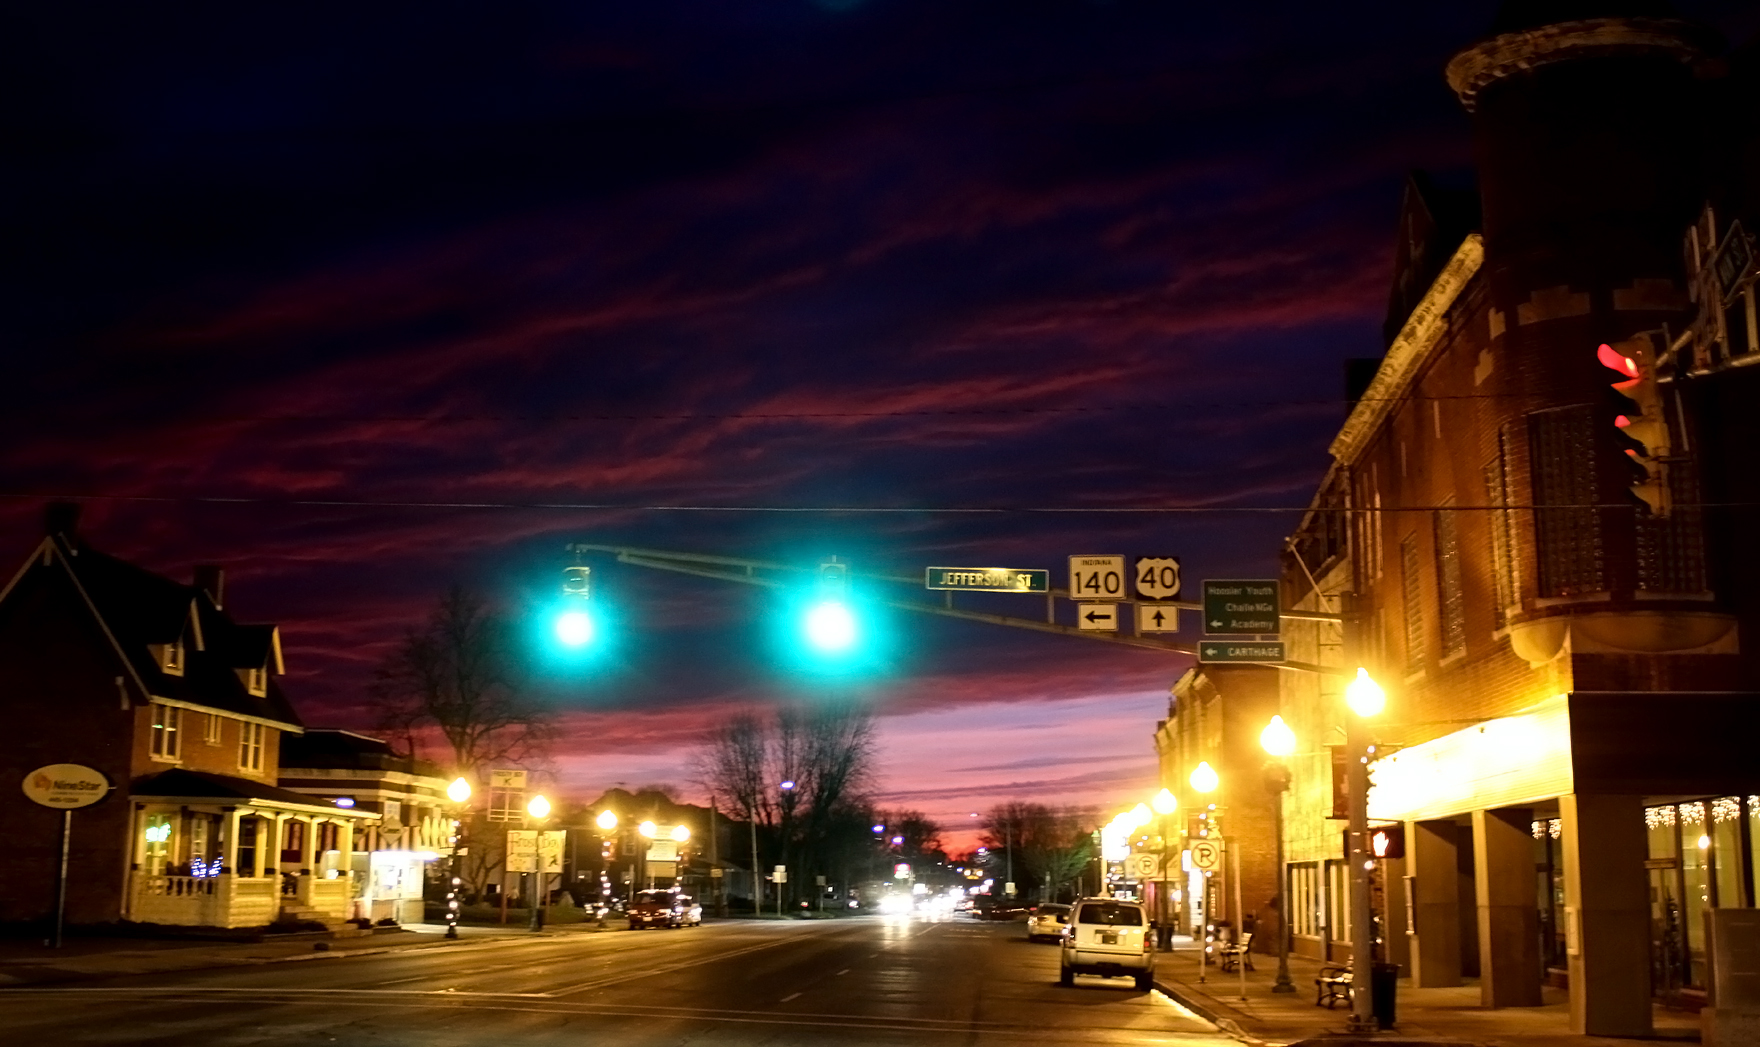 A dazzling sunset coupled with Knightstown's street and stoplights make an interesting image. The bucolic nature of small bergs like Knightstown is what drives many people from the city into the arms of such small towns. Residents find peace and a slower pace here. Traffic jams are practically nonexistent - except when back-ups on I-70 force cars and semis down onto U.S. 40. But, even then the waits are mercifully short compared to Indy's recurrent drive-time gridlock.